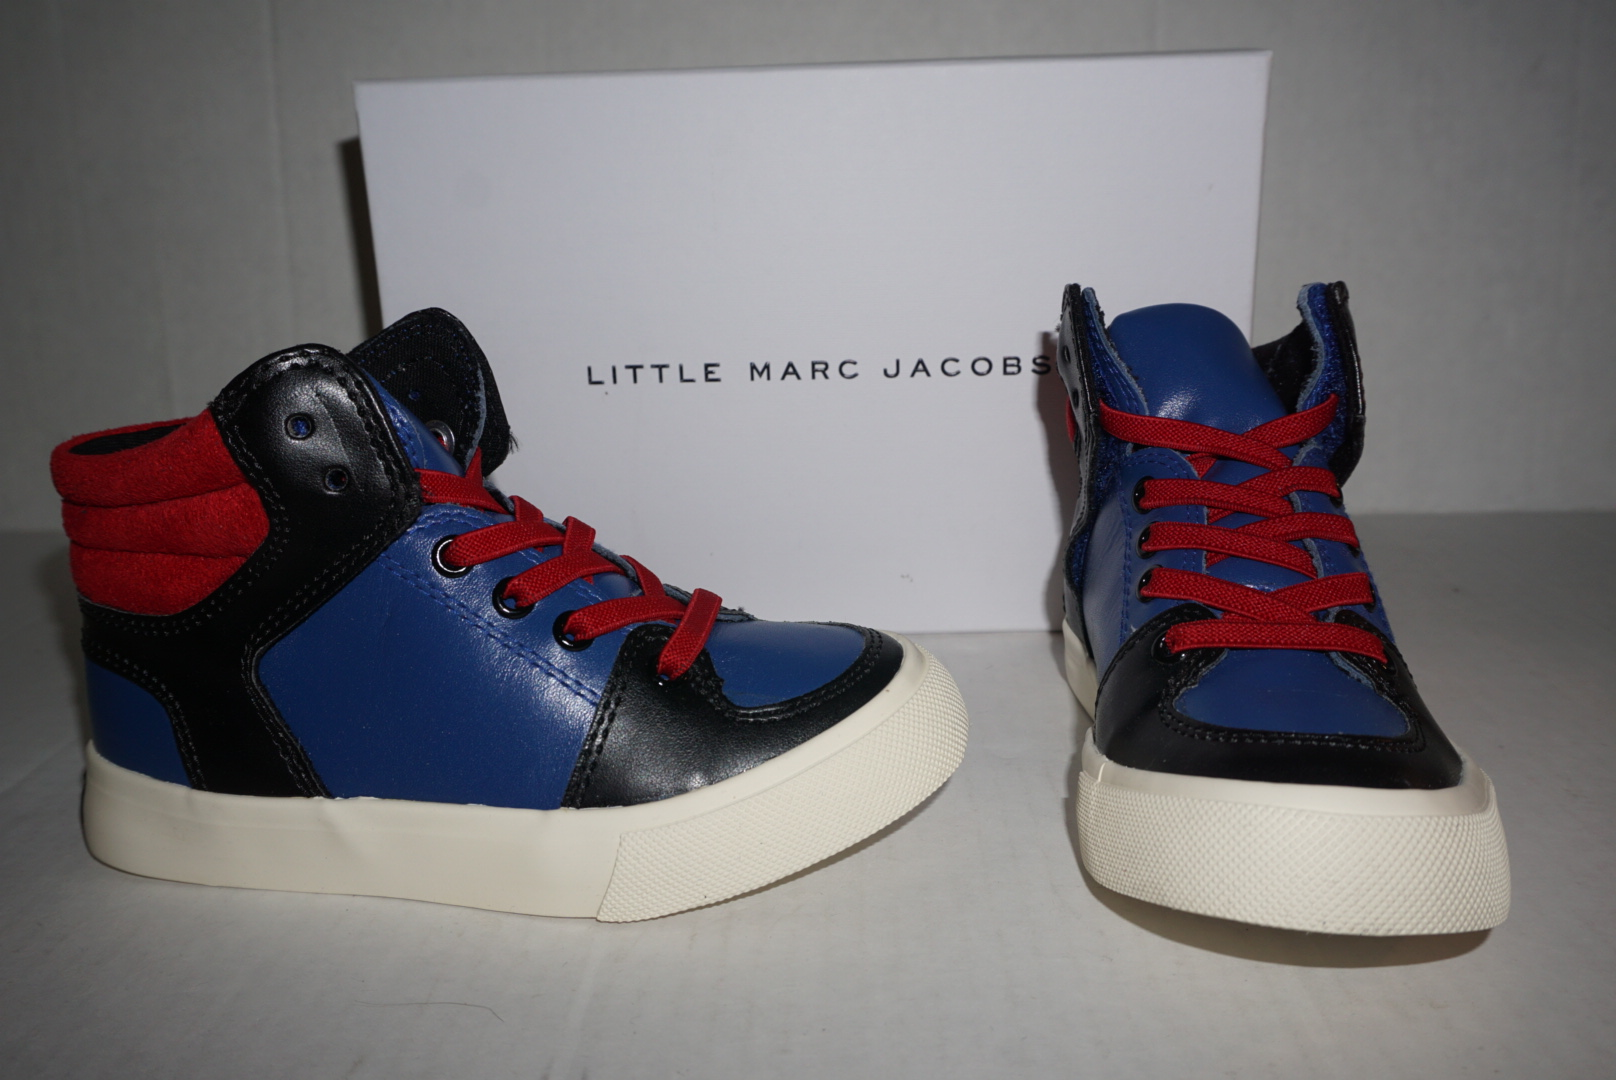 f2a6e5185fb06 Little Marc Jacobs  Red   Blue Sneakers from Stush Fashionista